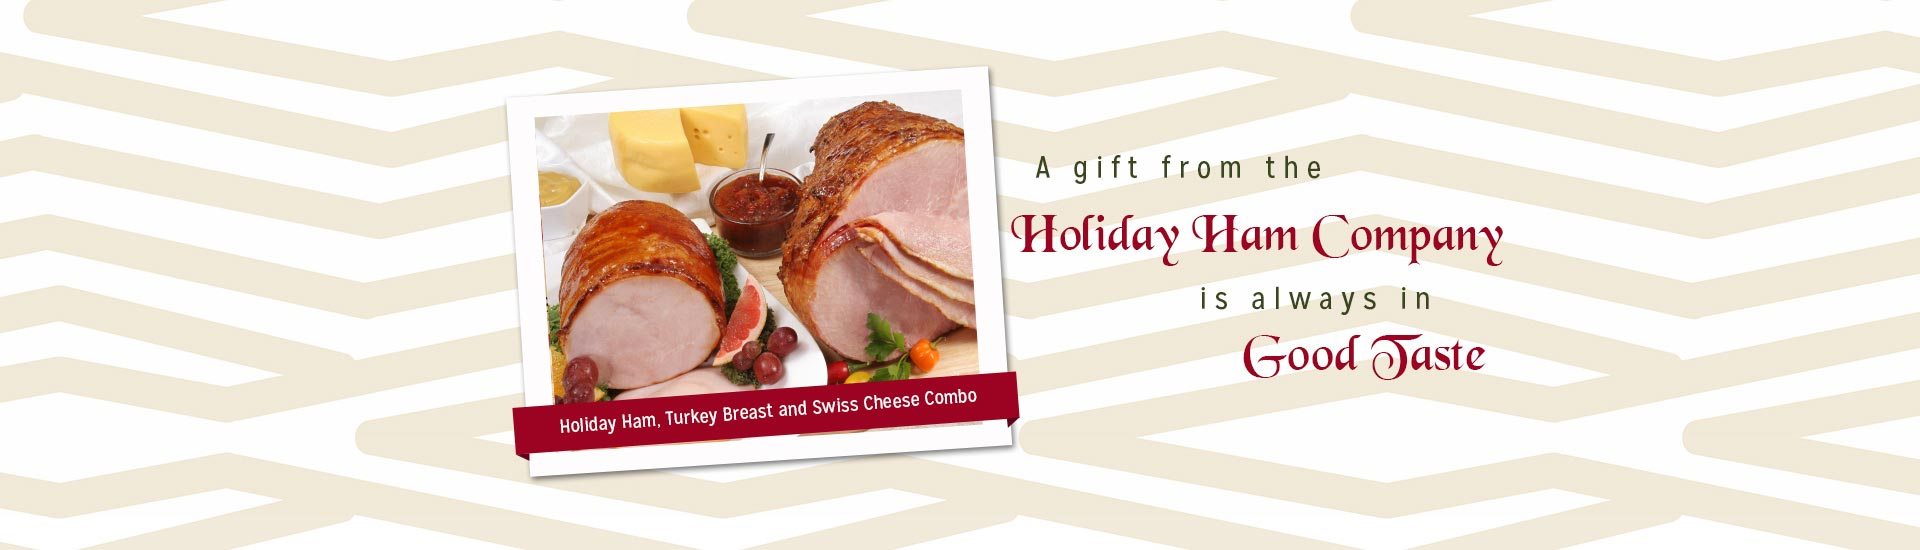 A gift from the Holiday Ham company is always in good taste.